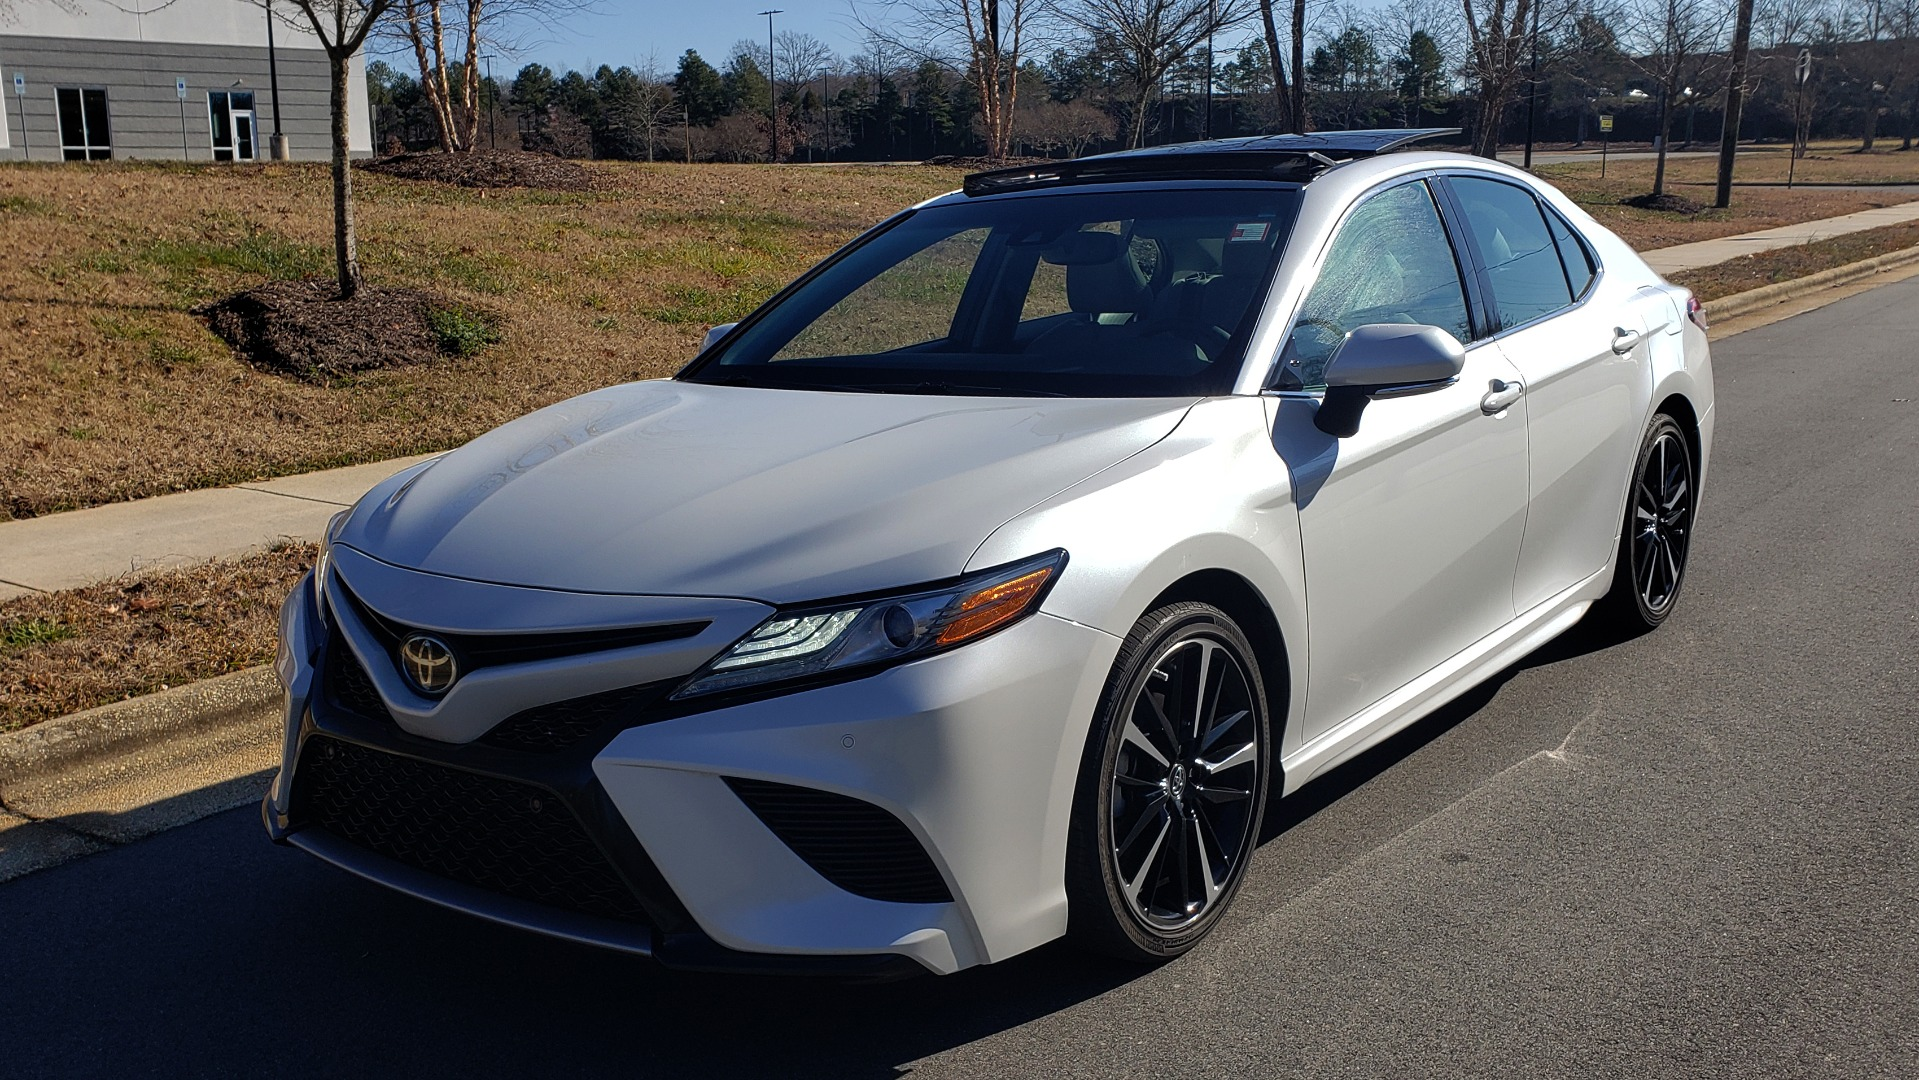 Used 2018 Toyota CAMRY XSE 2.5L SEDAN / 8-SPD AUTO / PANO-ROOF / 19IN WHEELS for sale $22,995 at Formula Imports in Charlotte NC 28227 1